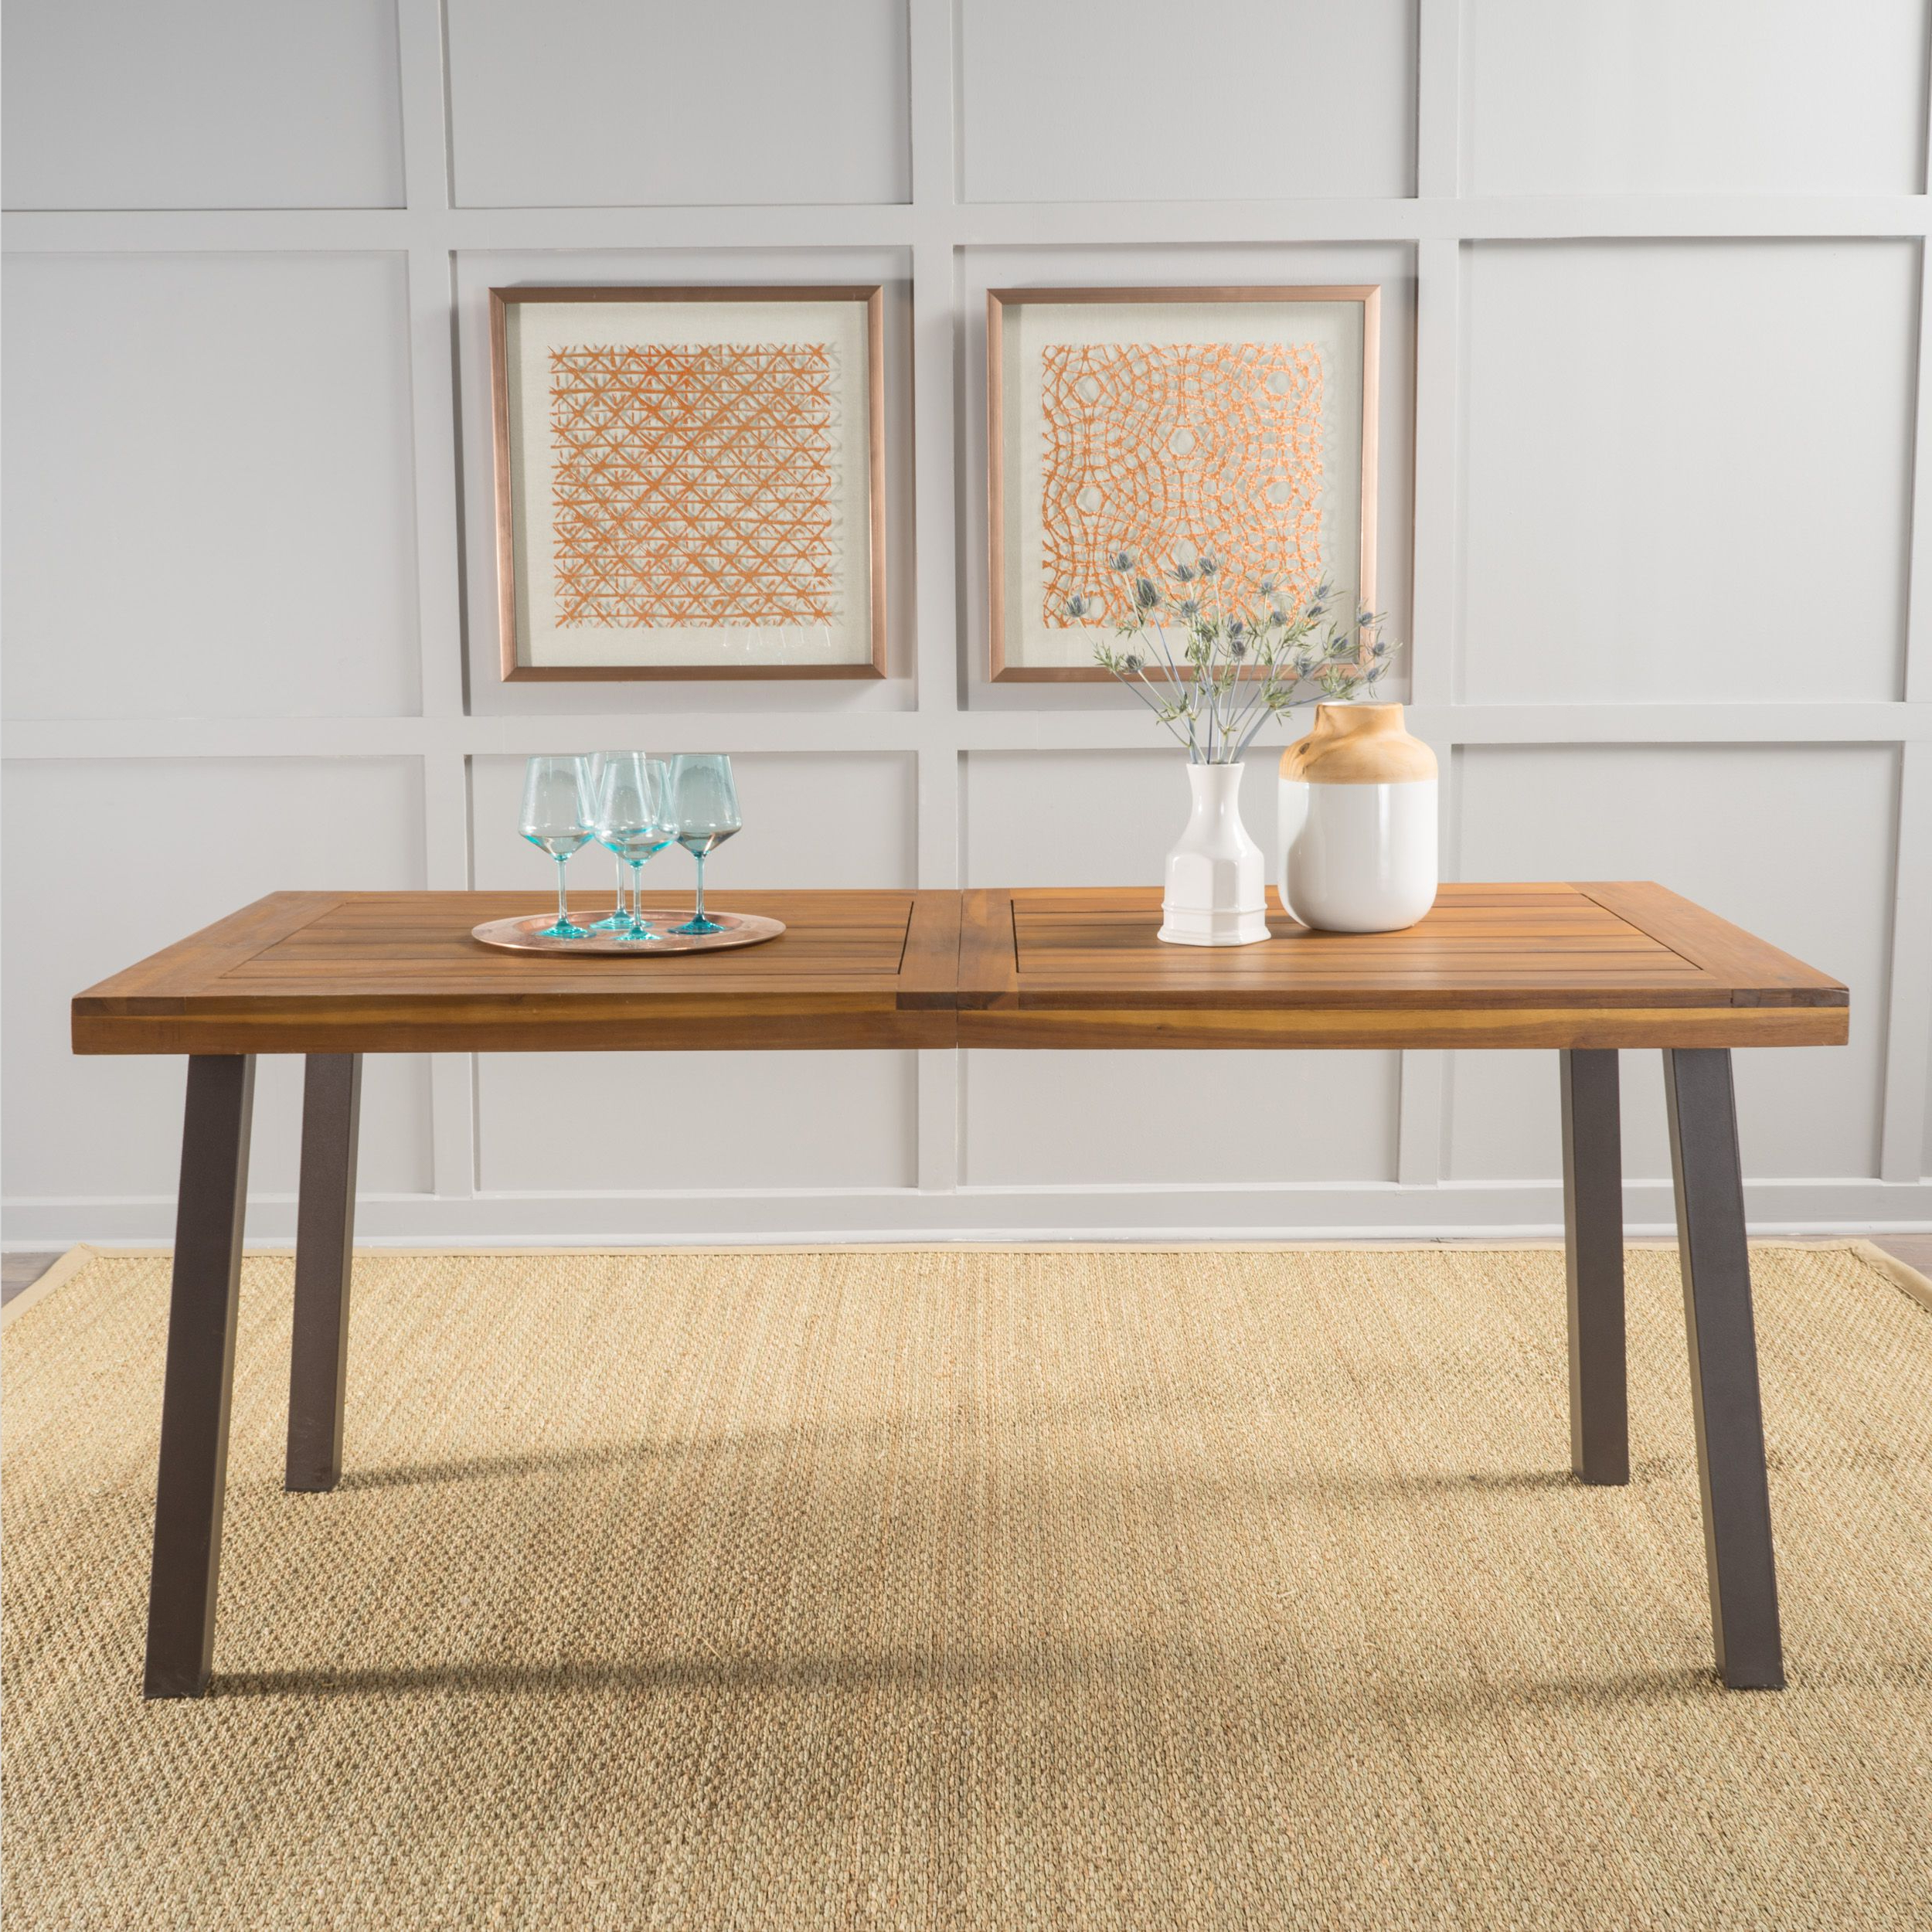 Fashionable 8 Seater Wood Contemporary Dining Tables With Extension Leaf With The 8 Best Dining Room Tables At Walmart In (View 30 of 30)